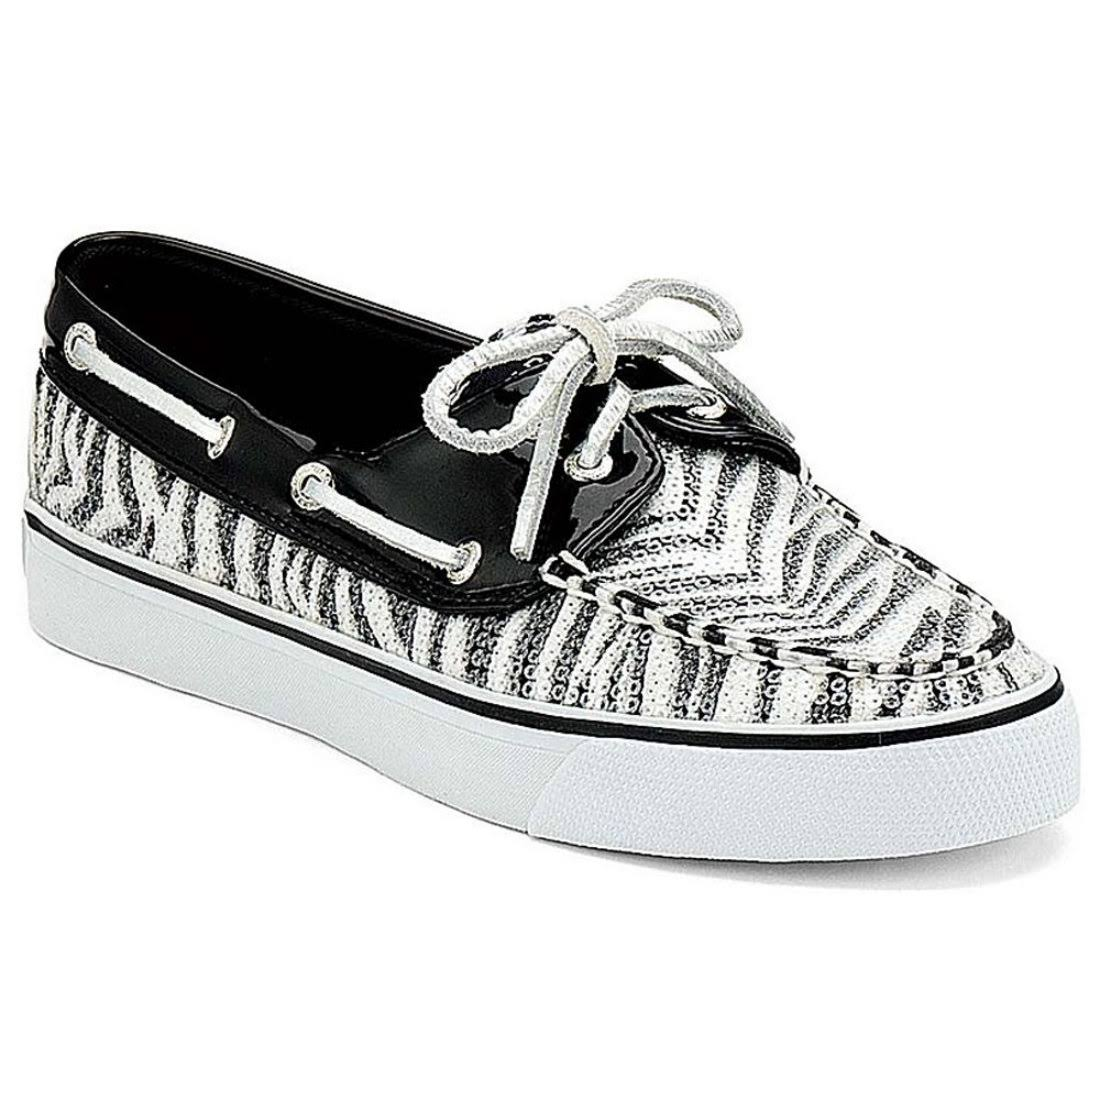 Sperry Topsider Women's Bahama Zebra Black 9.5 M